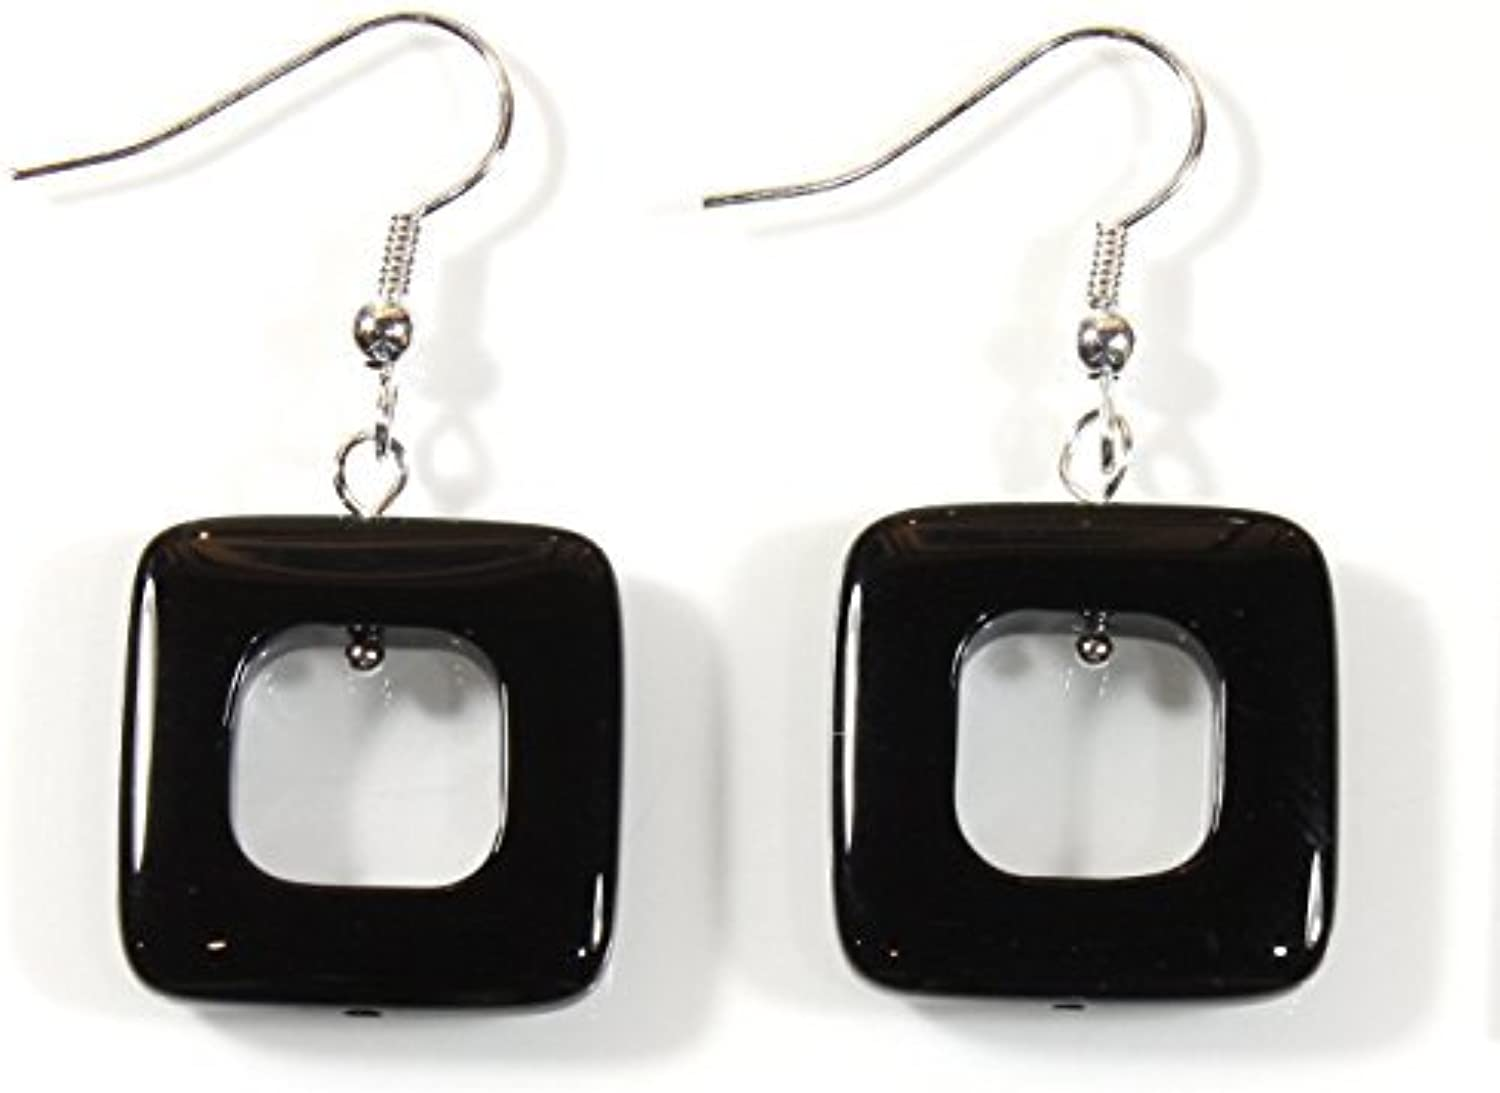 Square Deal Black Agate (Dyed) Earrings, Dangle 1.5 Inches